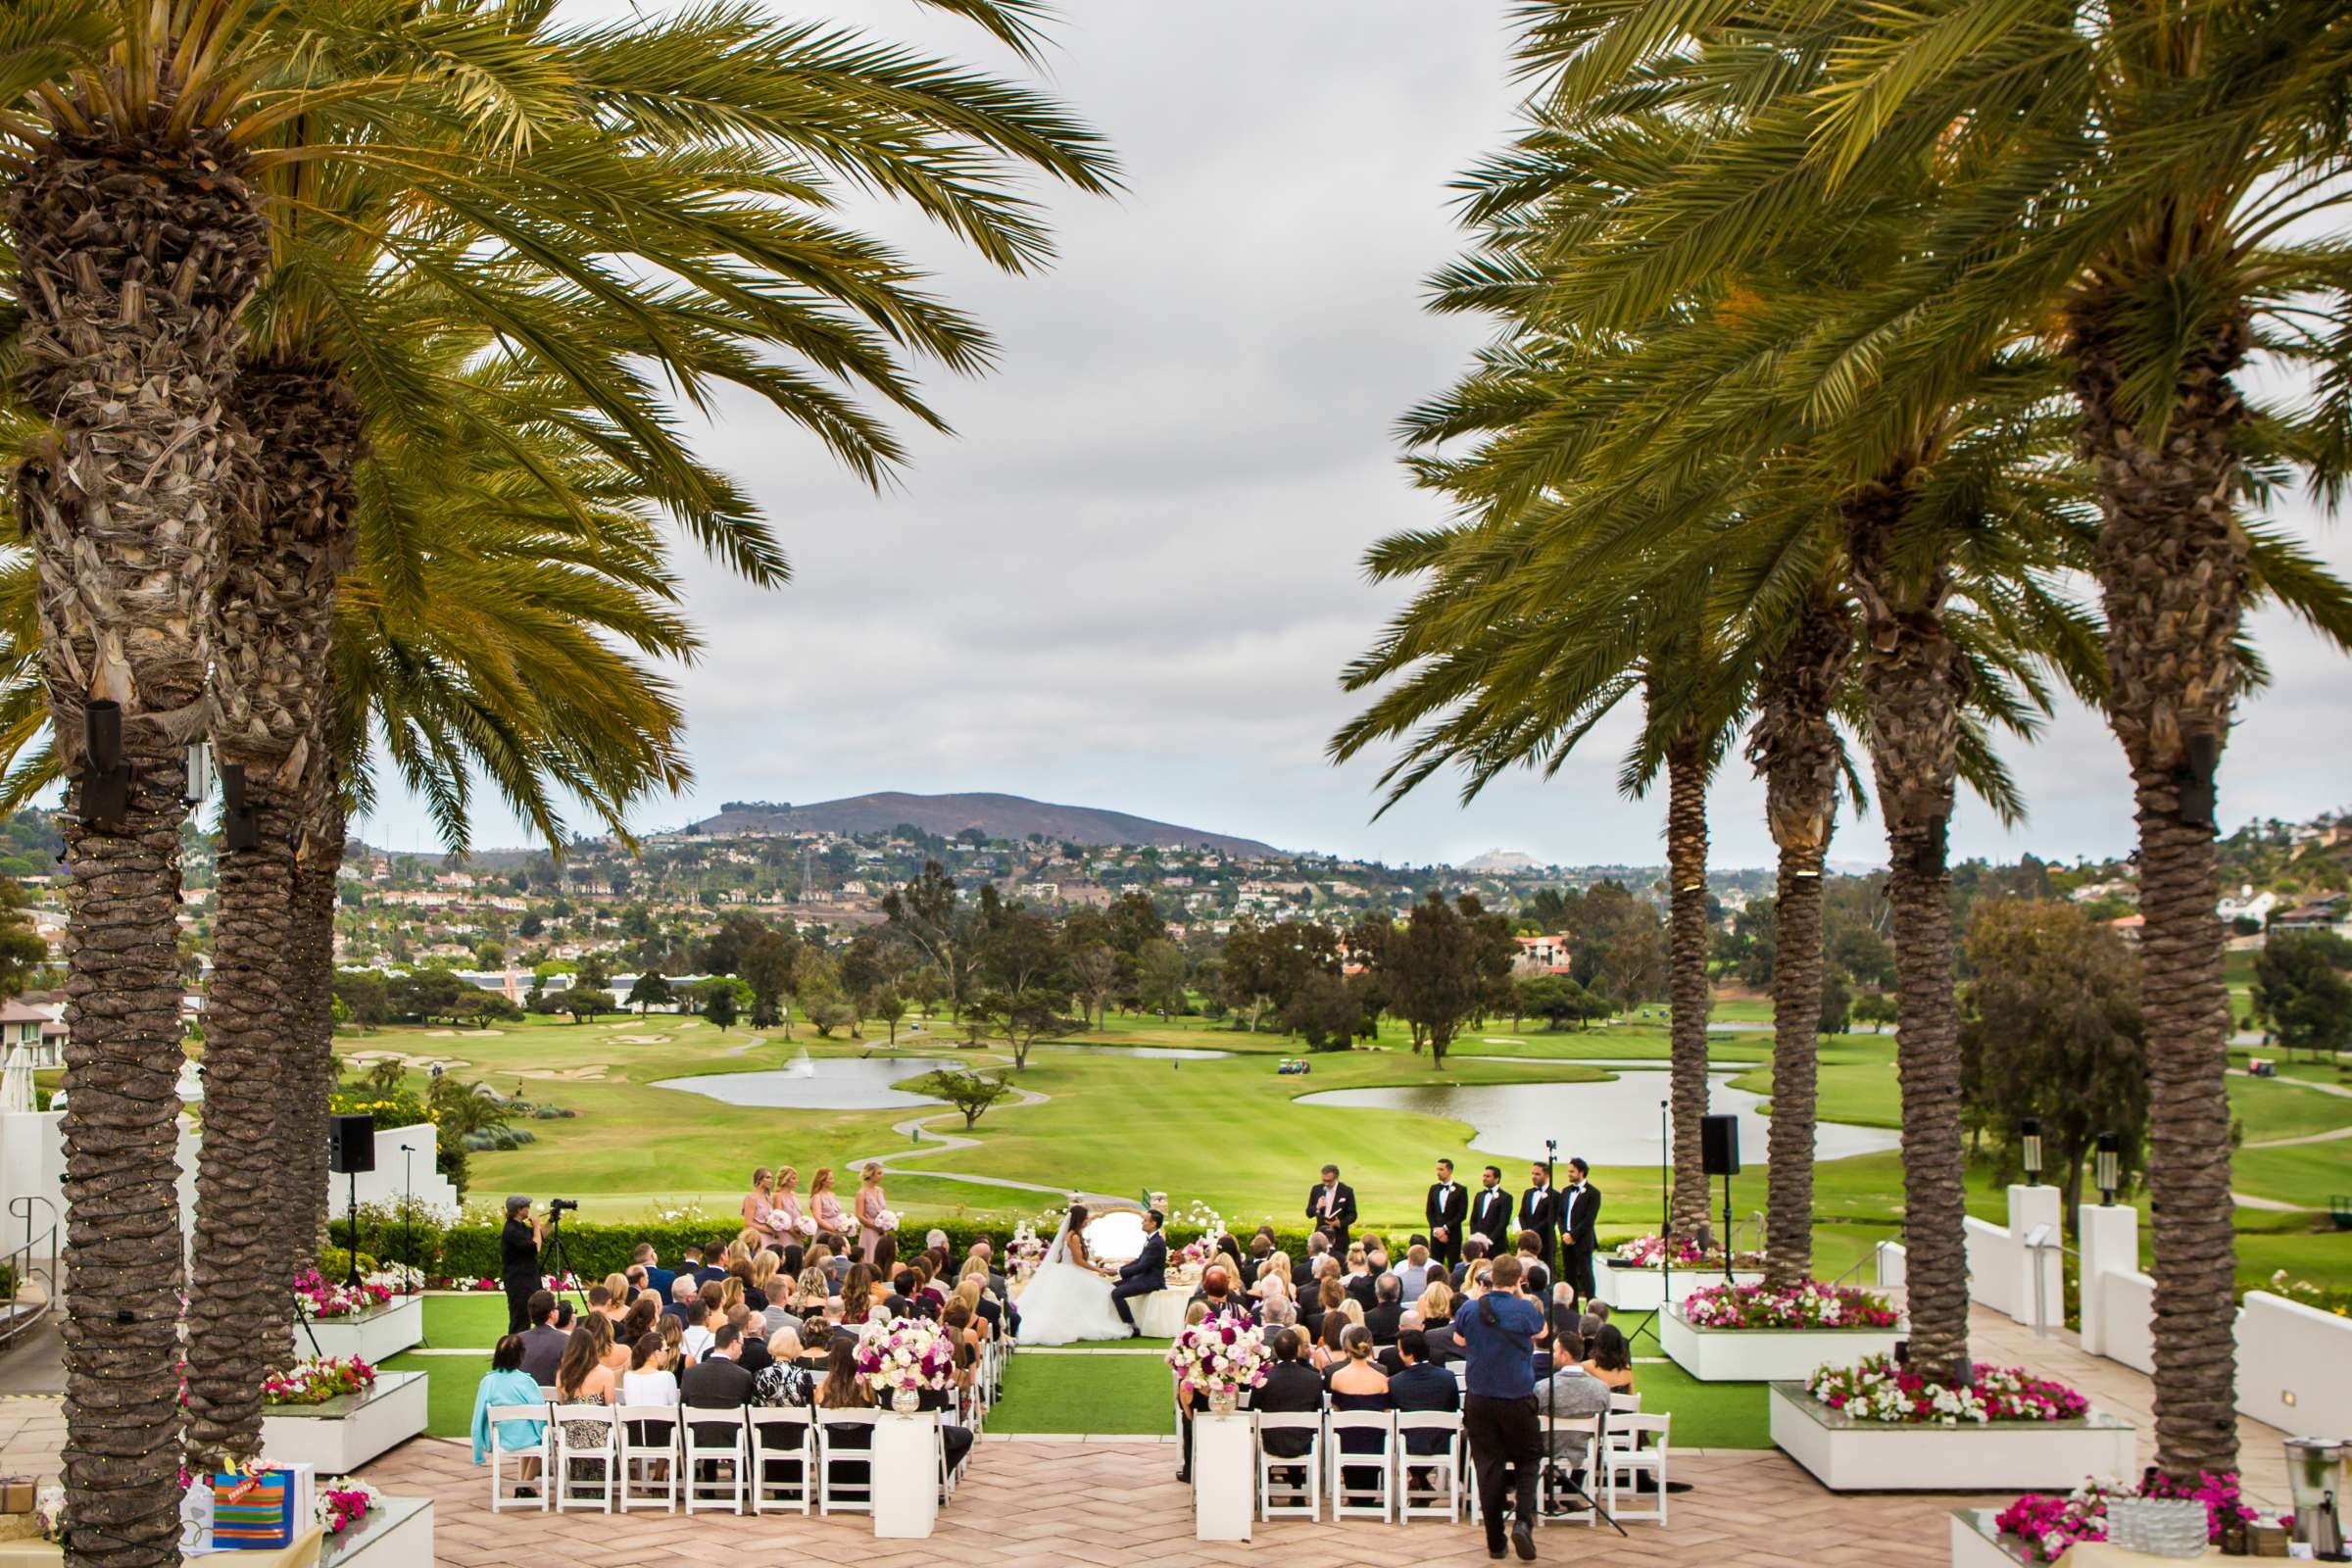 Omni La Costa Resort & Spa Wedding coordinated by Fabulous Two Design, Kristyn and Mani Wedding Photo #96 by True Photography